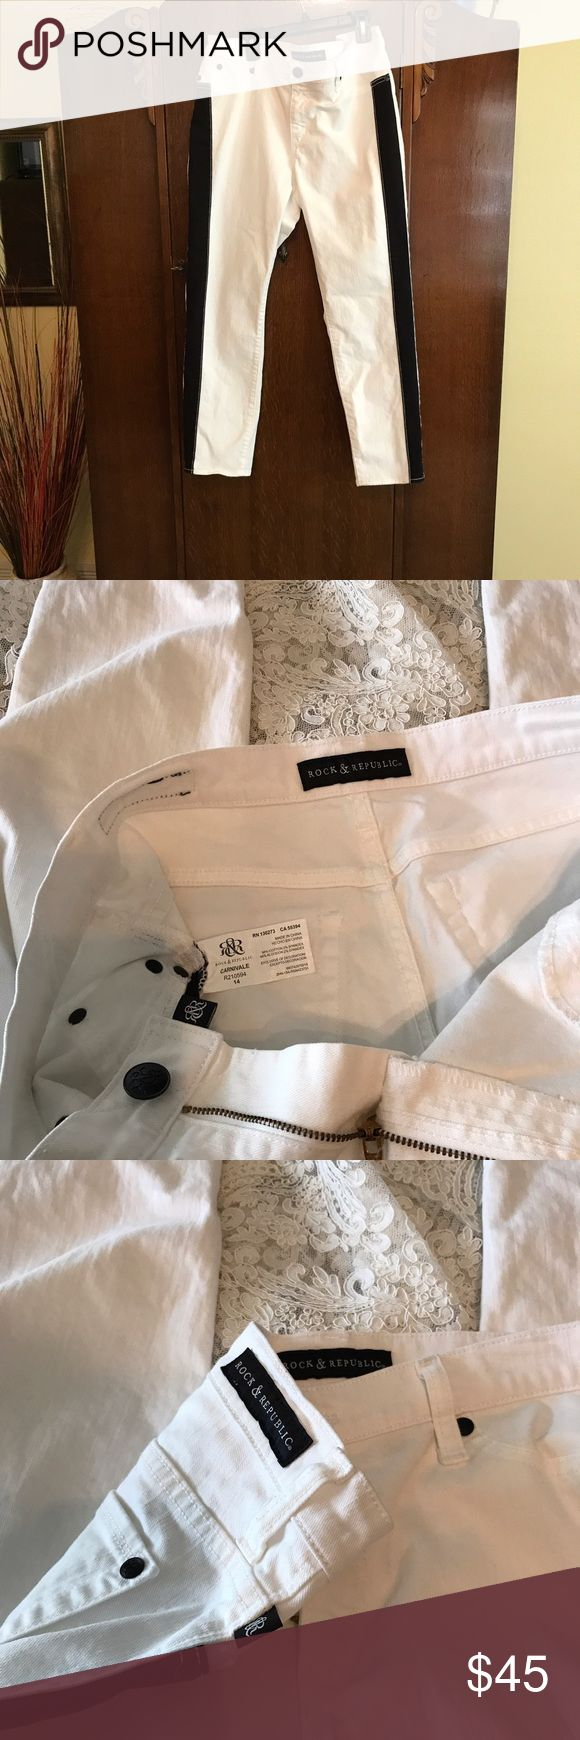 Rock & Republic White Jeans REDUCED PRICE NWOT white with black trim on each side front.  Style:  Carnival.  These are in perfect condition.  98% cotton, 2% spandex.  Inseam is 26.  These are ankle pants and color blocking makes them slimming.  Perfect for summer with strappy black high heels! Rock & Republic Jeans Ankle & Cropped